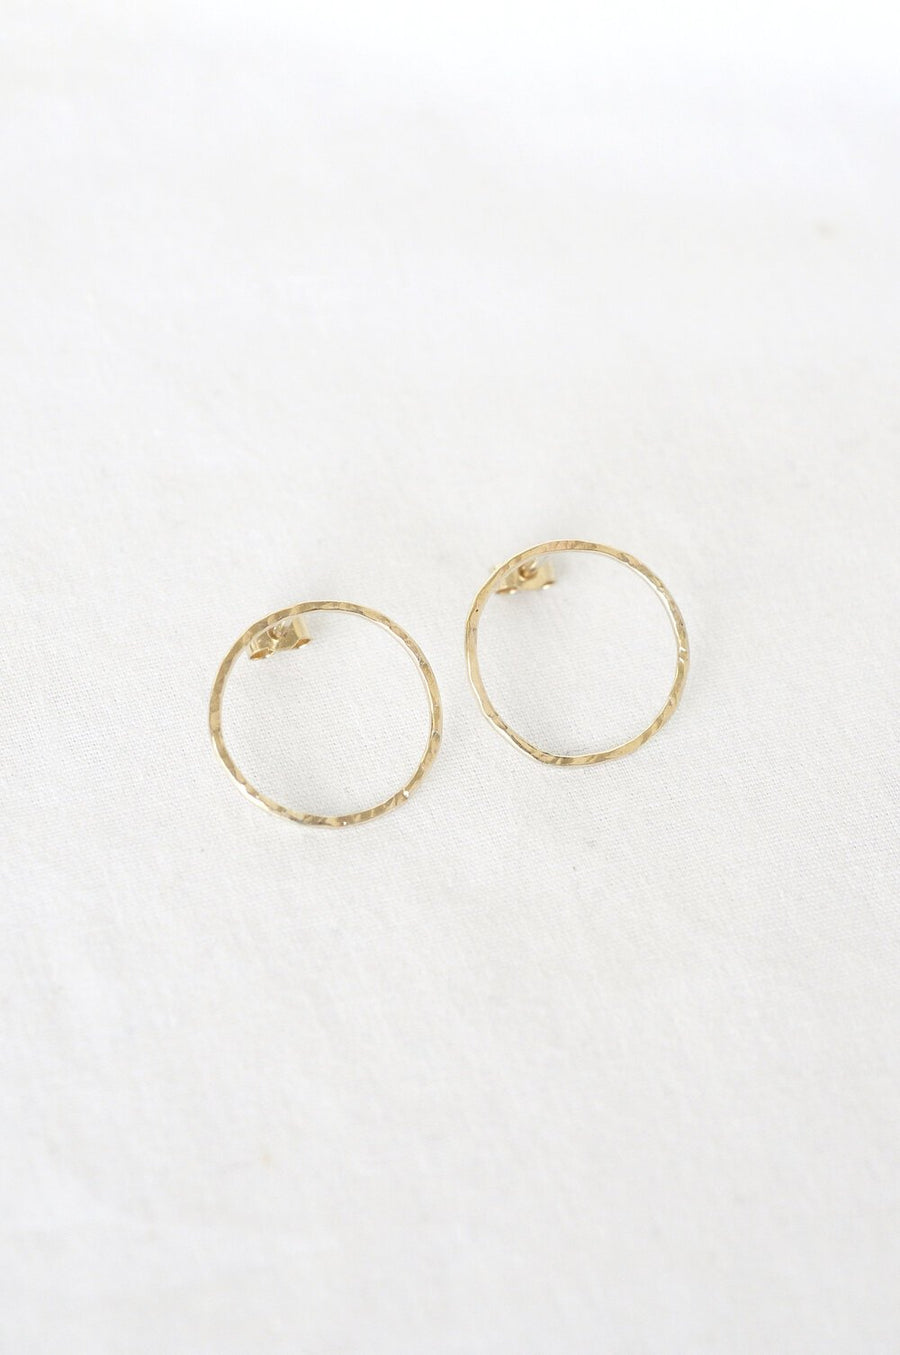 9ct Gold Hammered Circle Stud Earrings